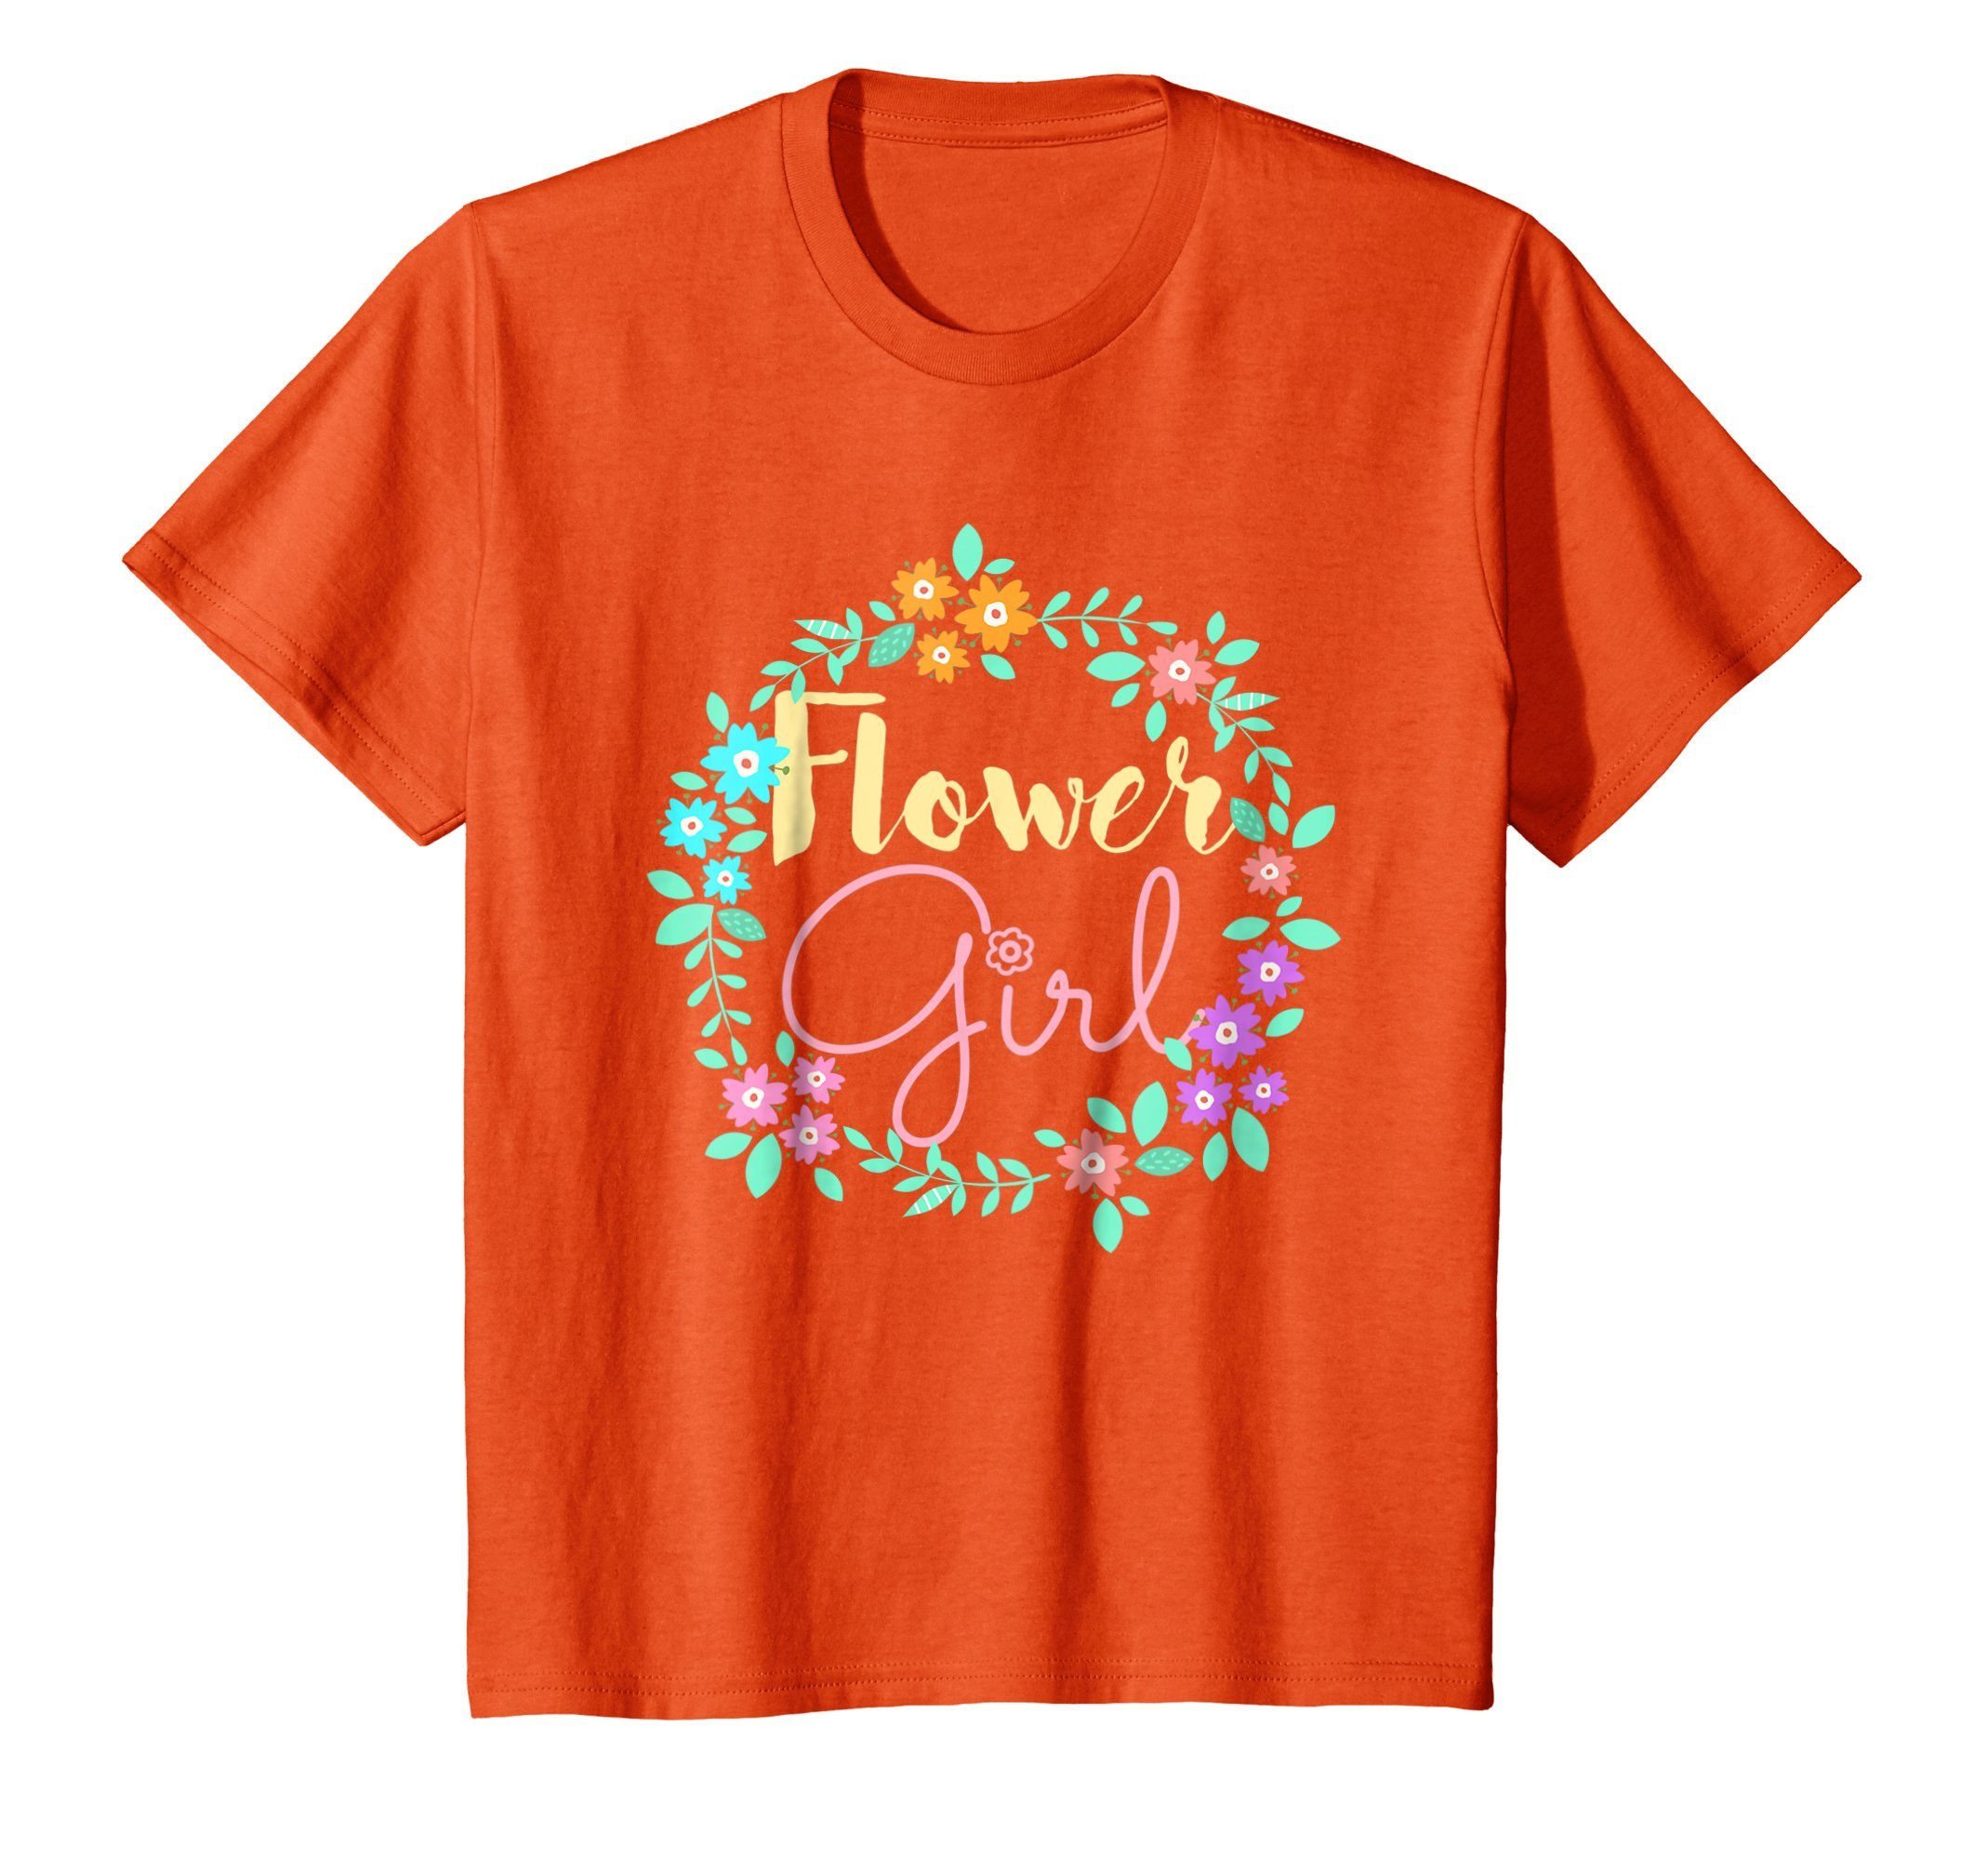 Kids Flower Girl Tee Shirt Cute Gifts Wedding 10 Orange